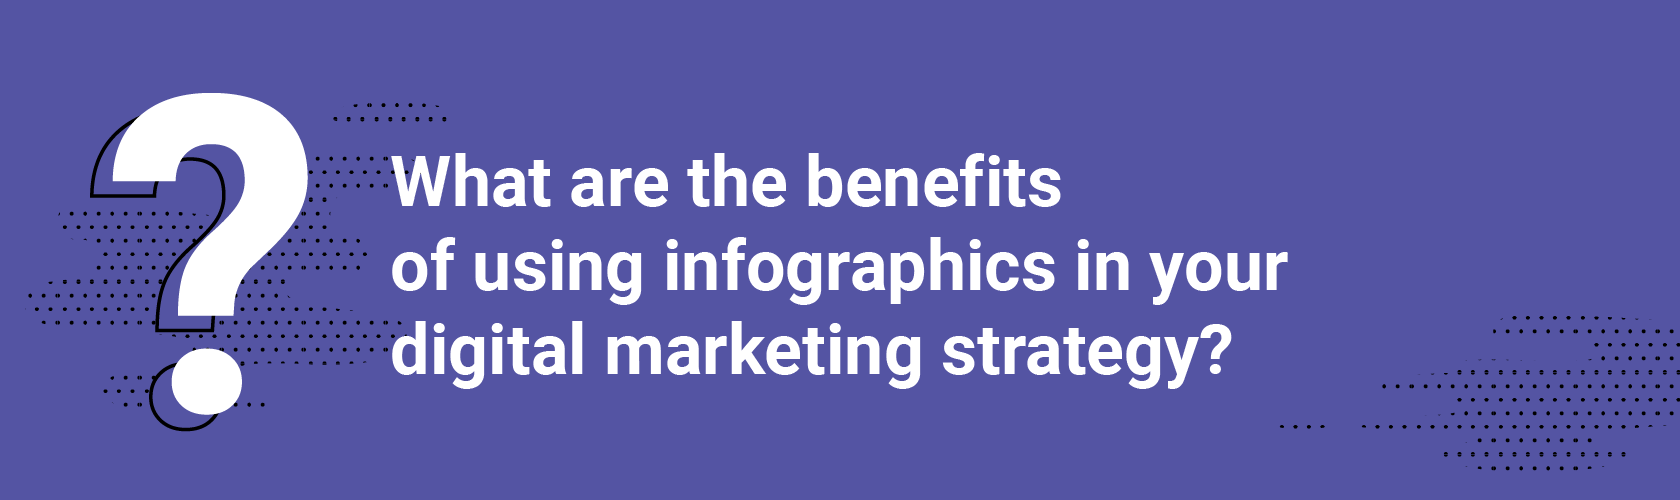 What are the benefits of using infographics in your digital marketing strategy?